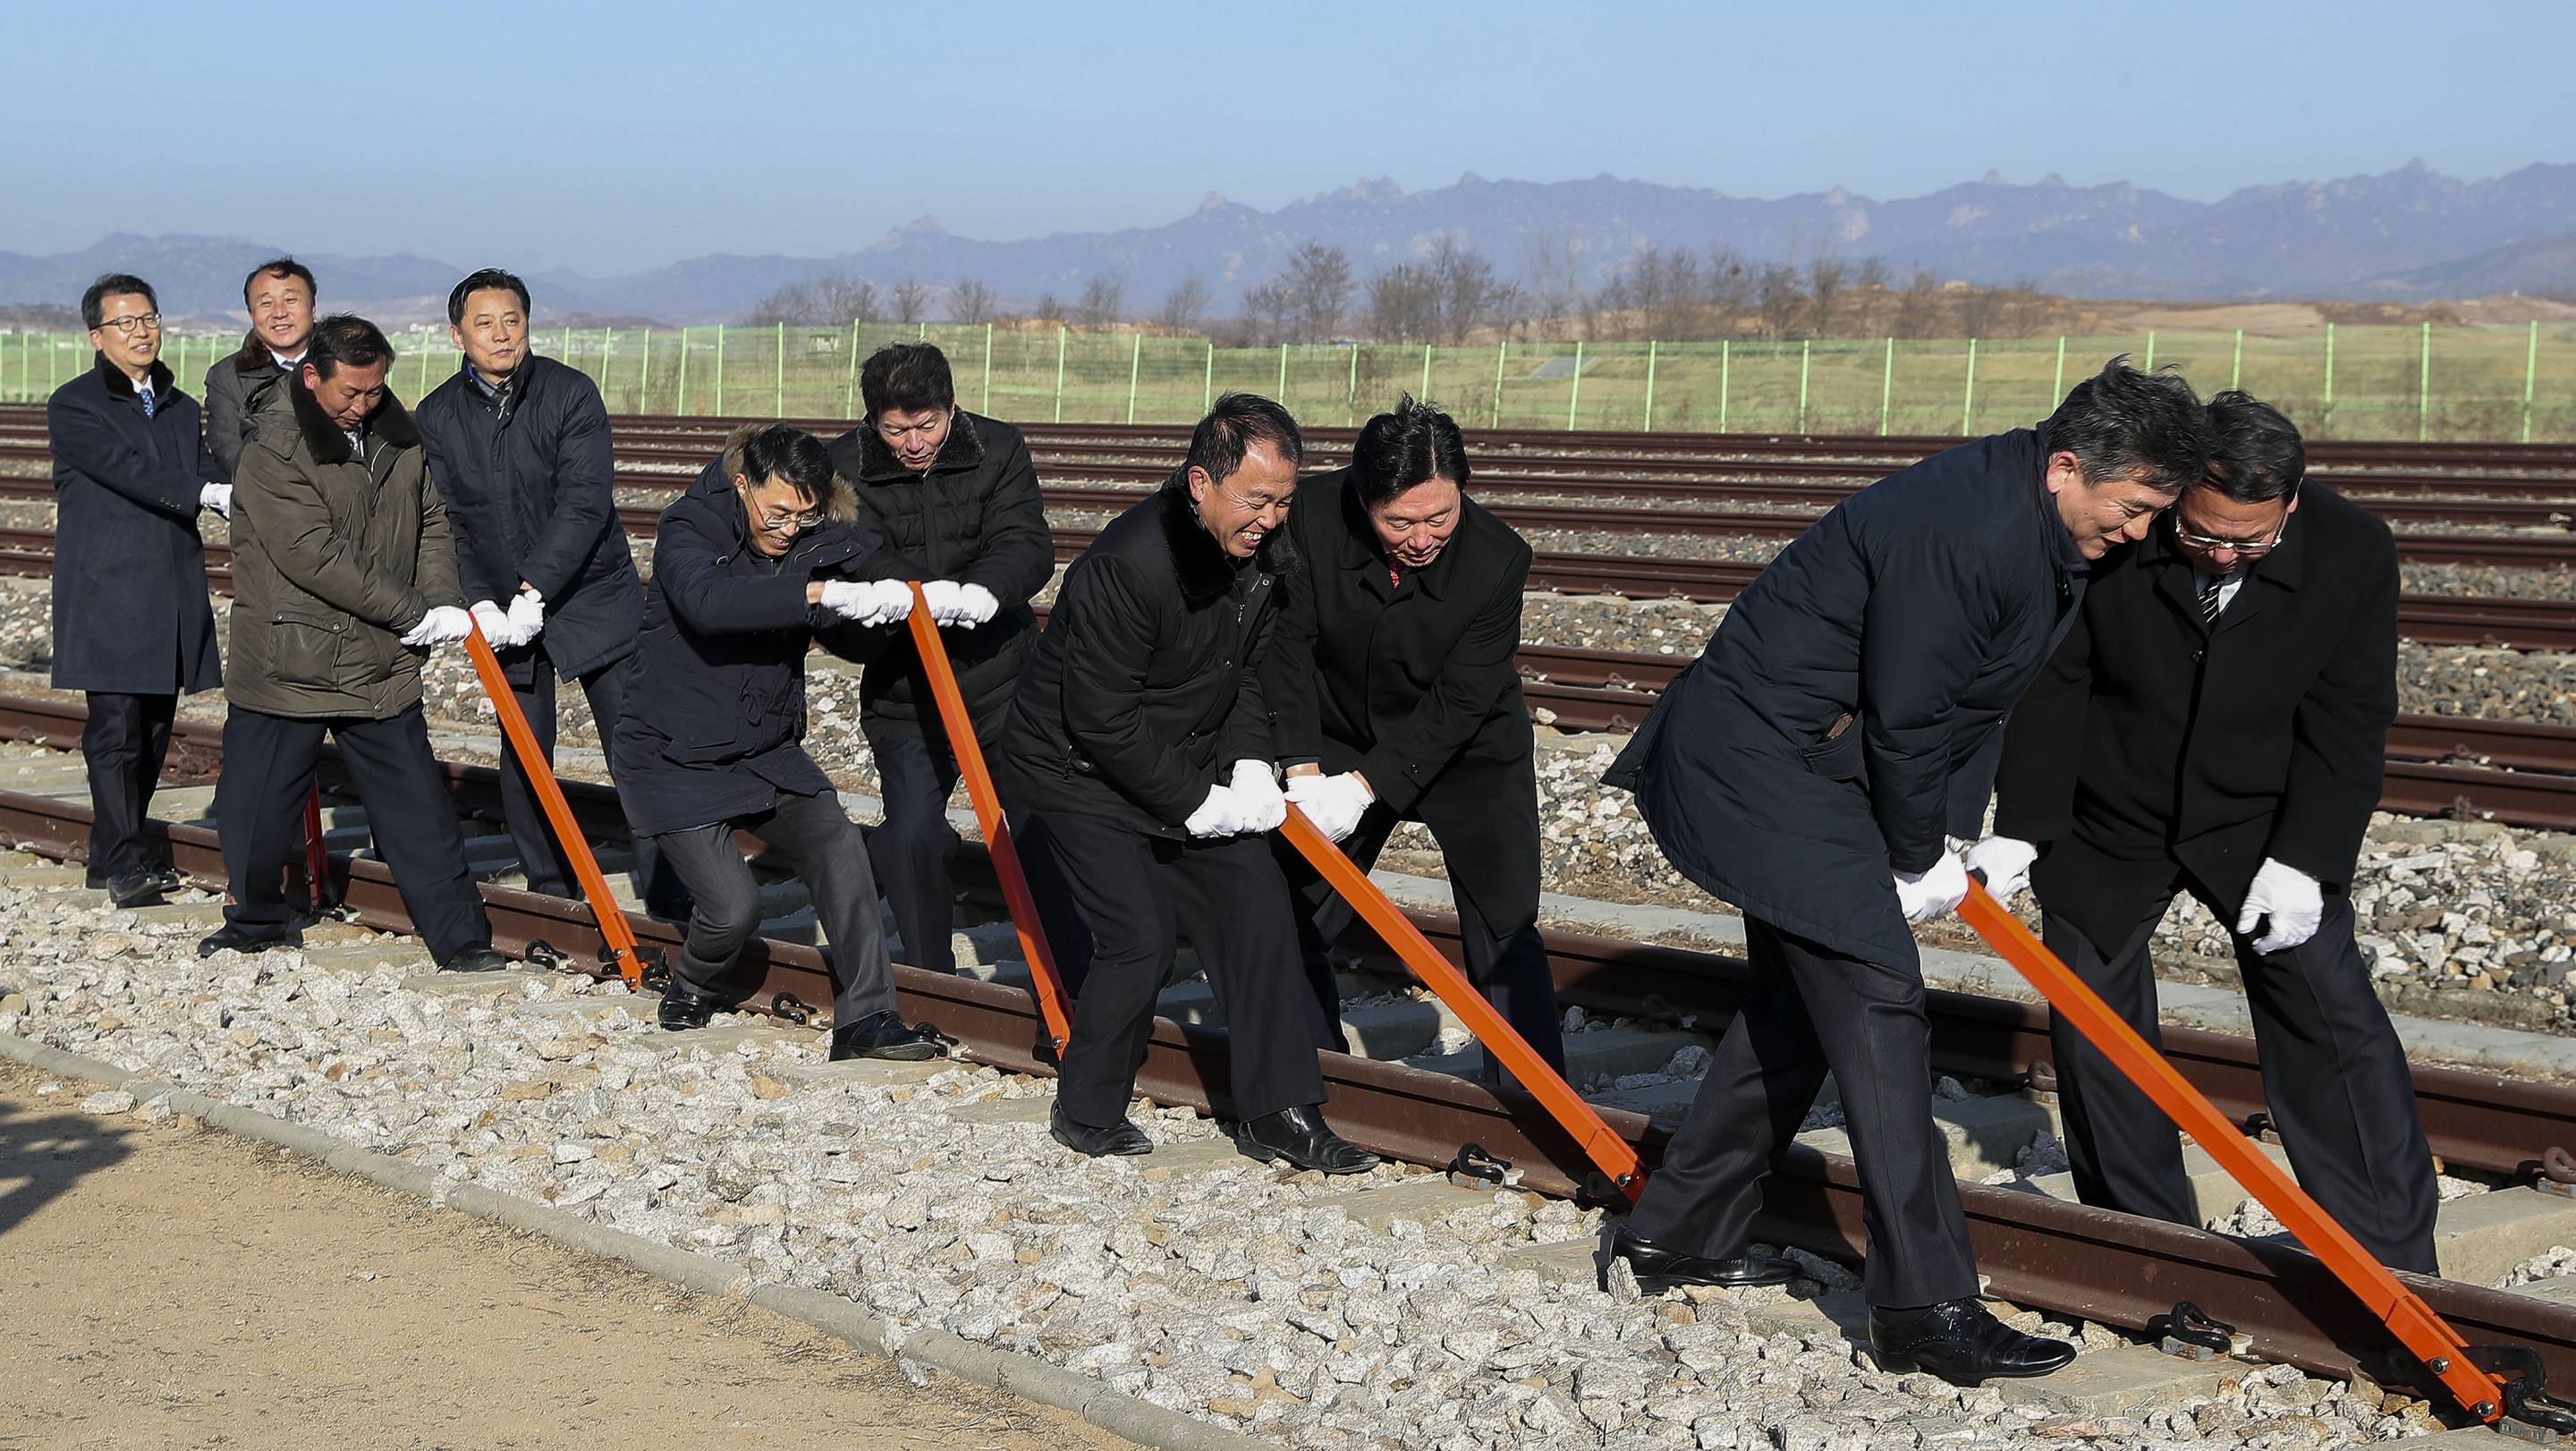 Groundbreaking Ceremony For Inter-Korean Railway And Road Project